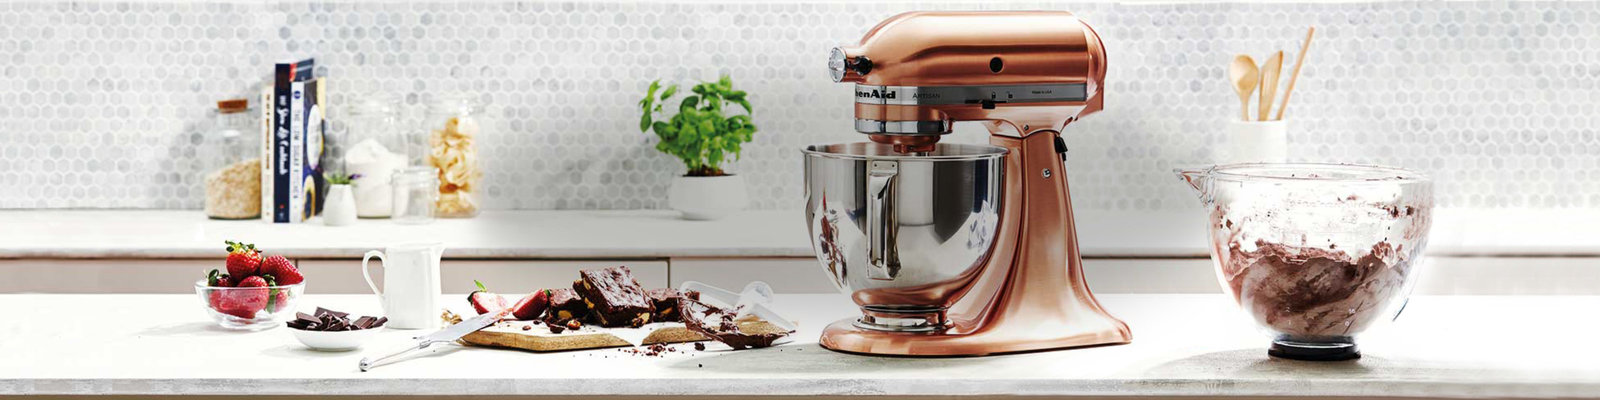 Swell Kitchenaid Appliances Appliances Online Home Remodeling Inspirations Cosmcuboardxyz